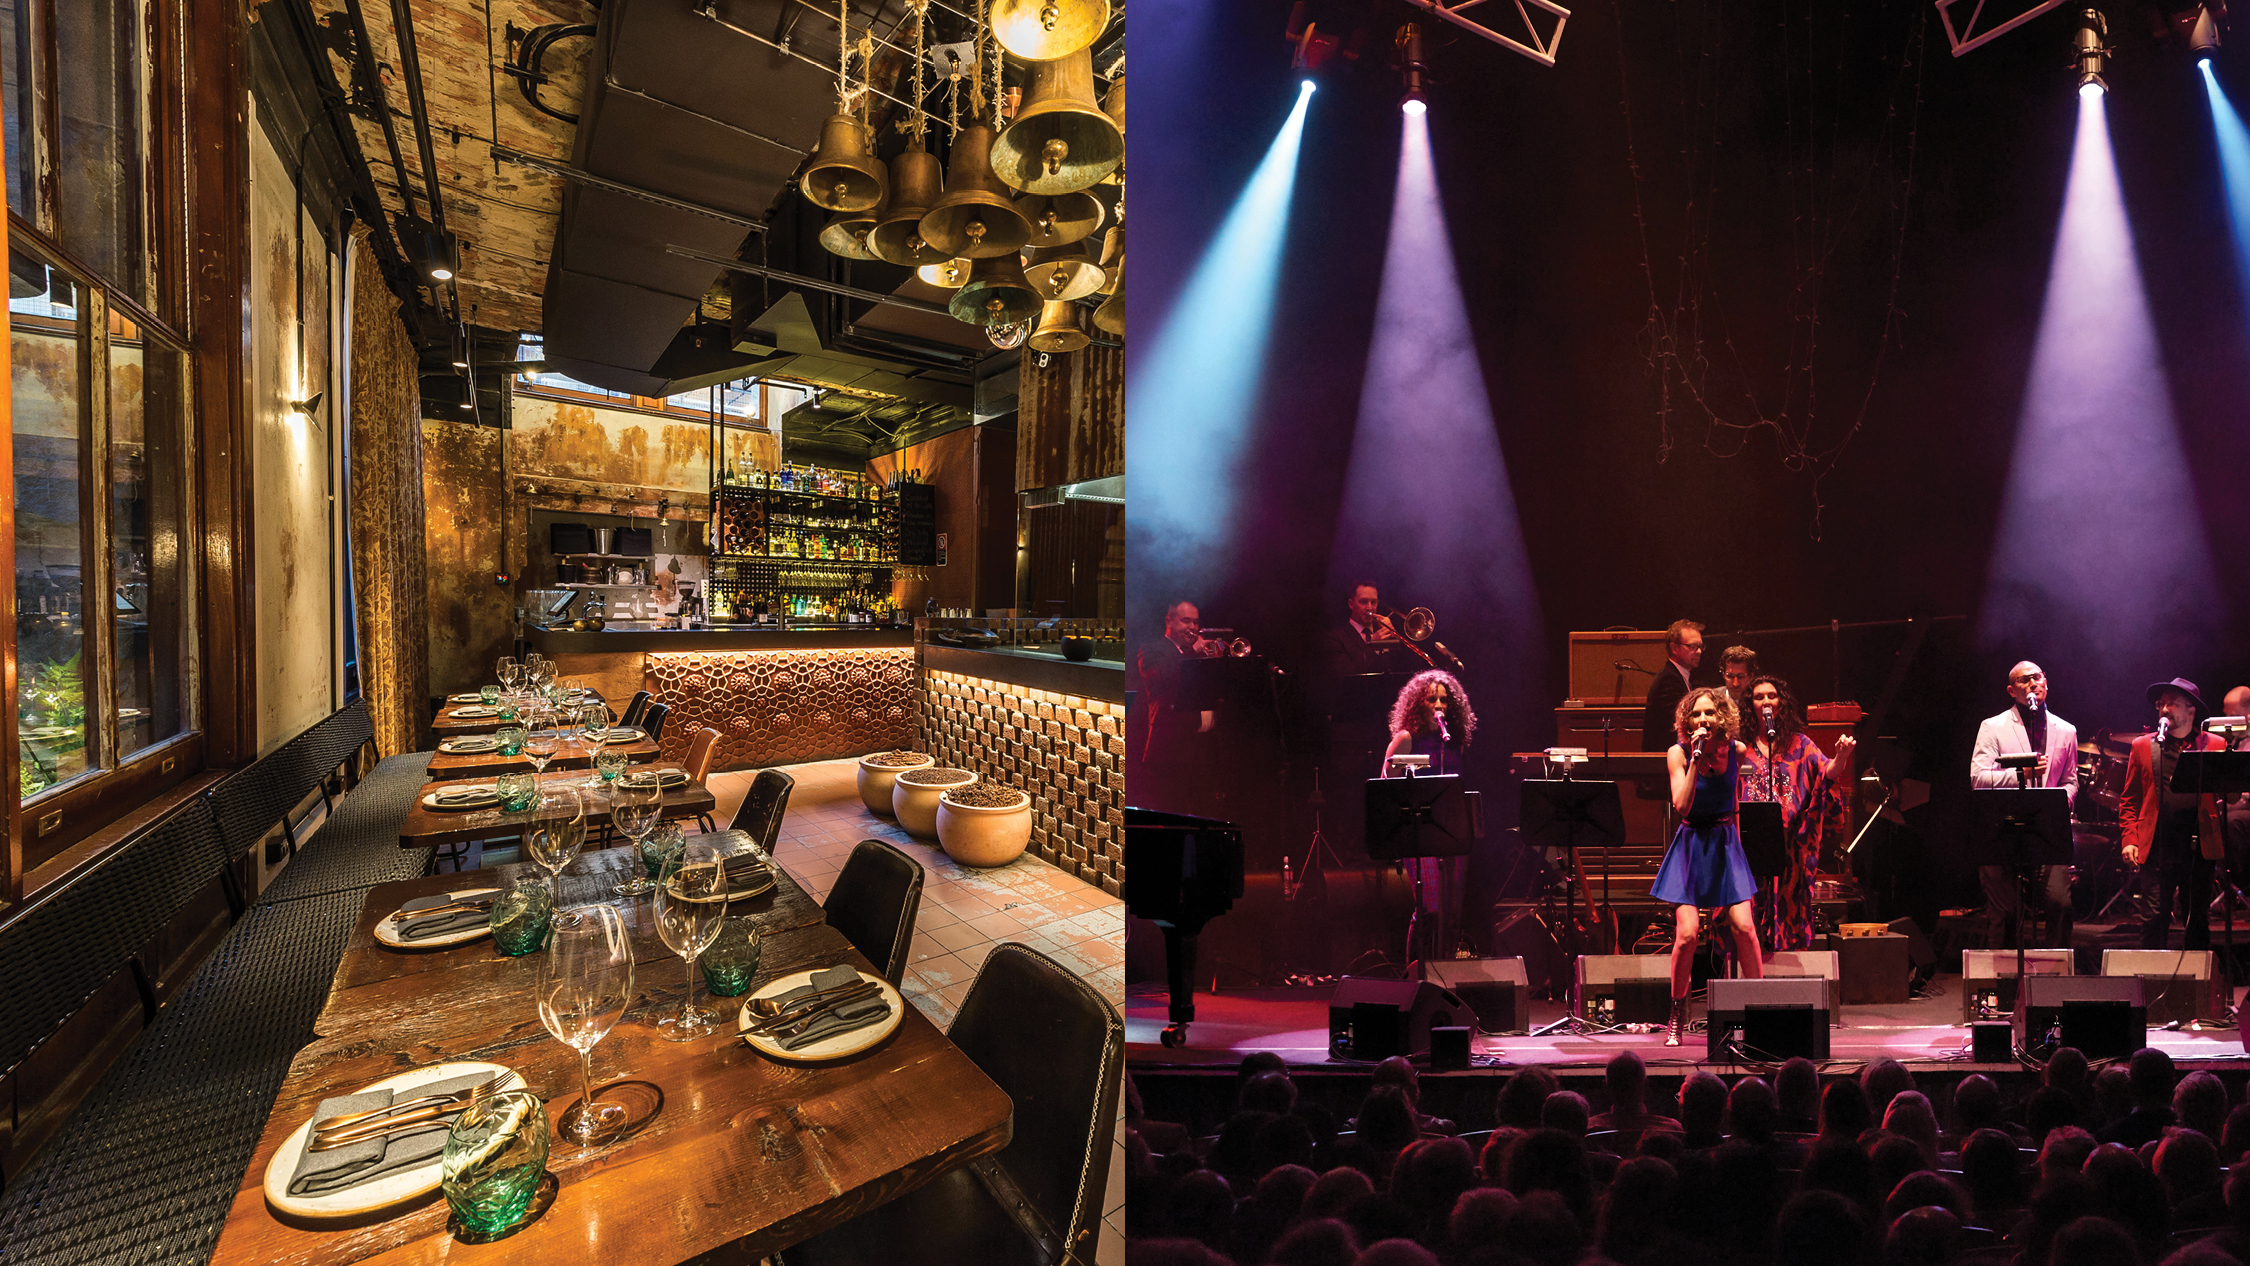 Win a night out at the City Recital Hall plus dinner for two at INDU